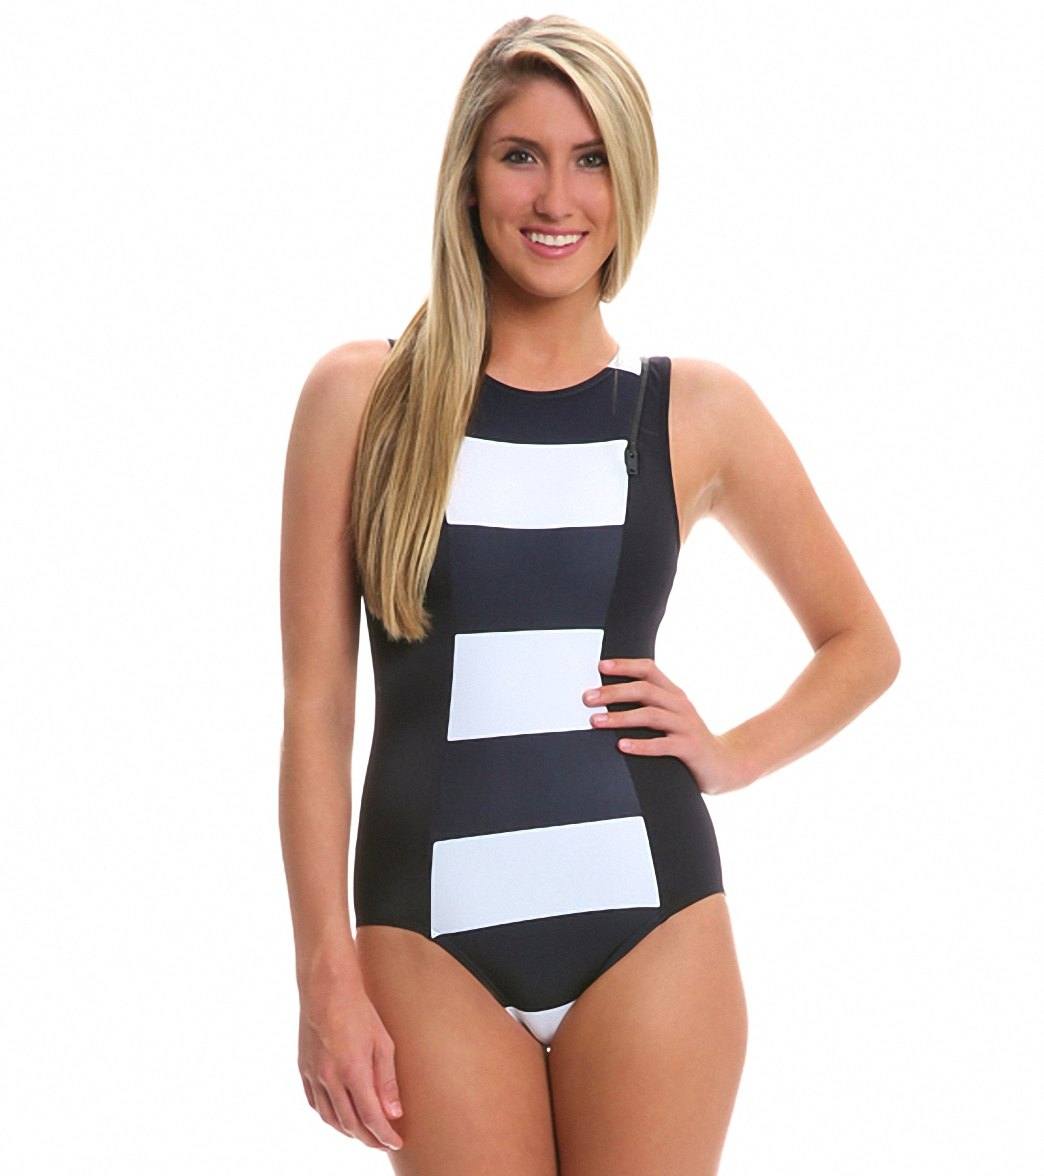 c86319bab2811 DKNY Lorimer Stripe High Neck One Piece Swimsuit at SwimOutlet ...